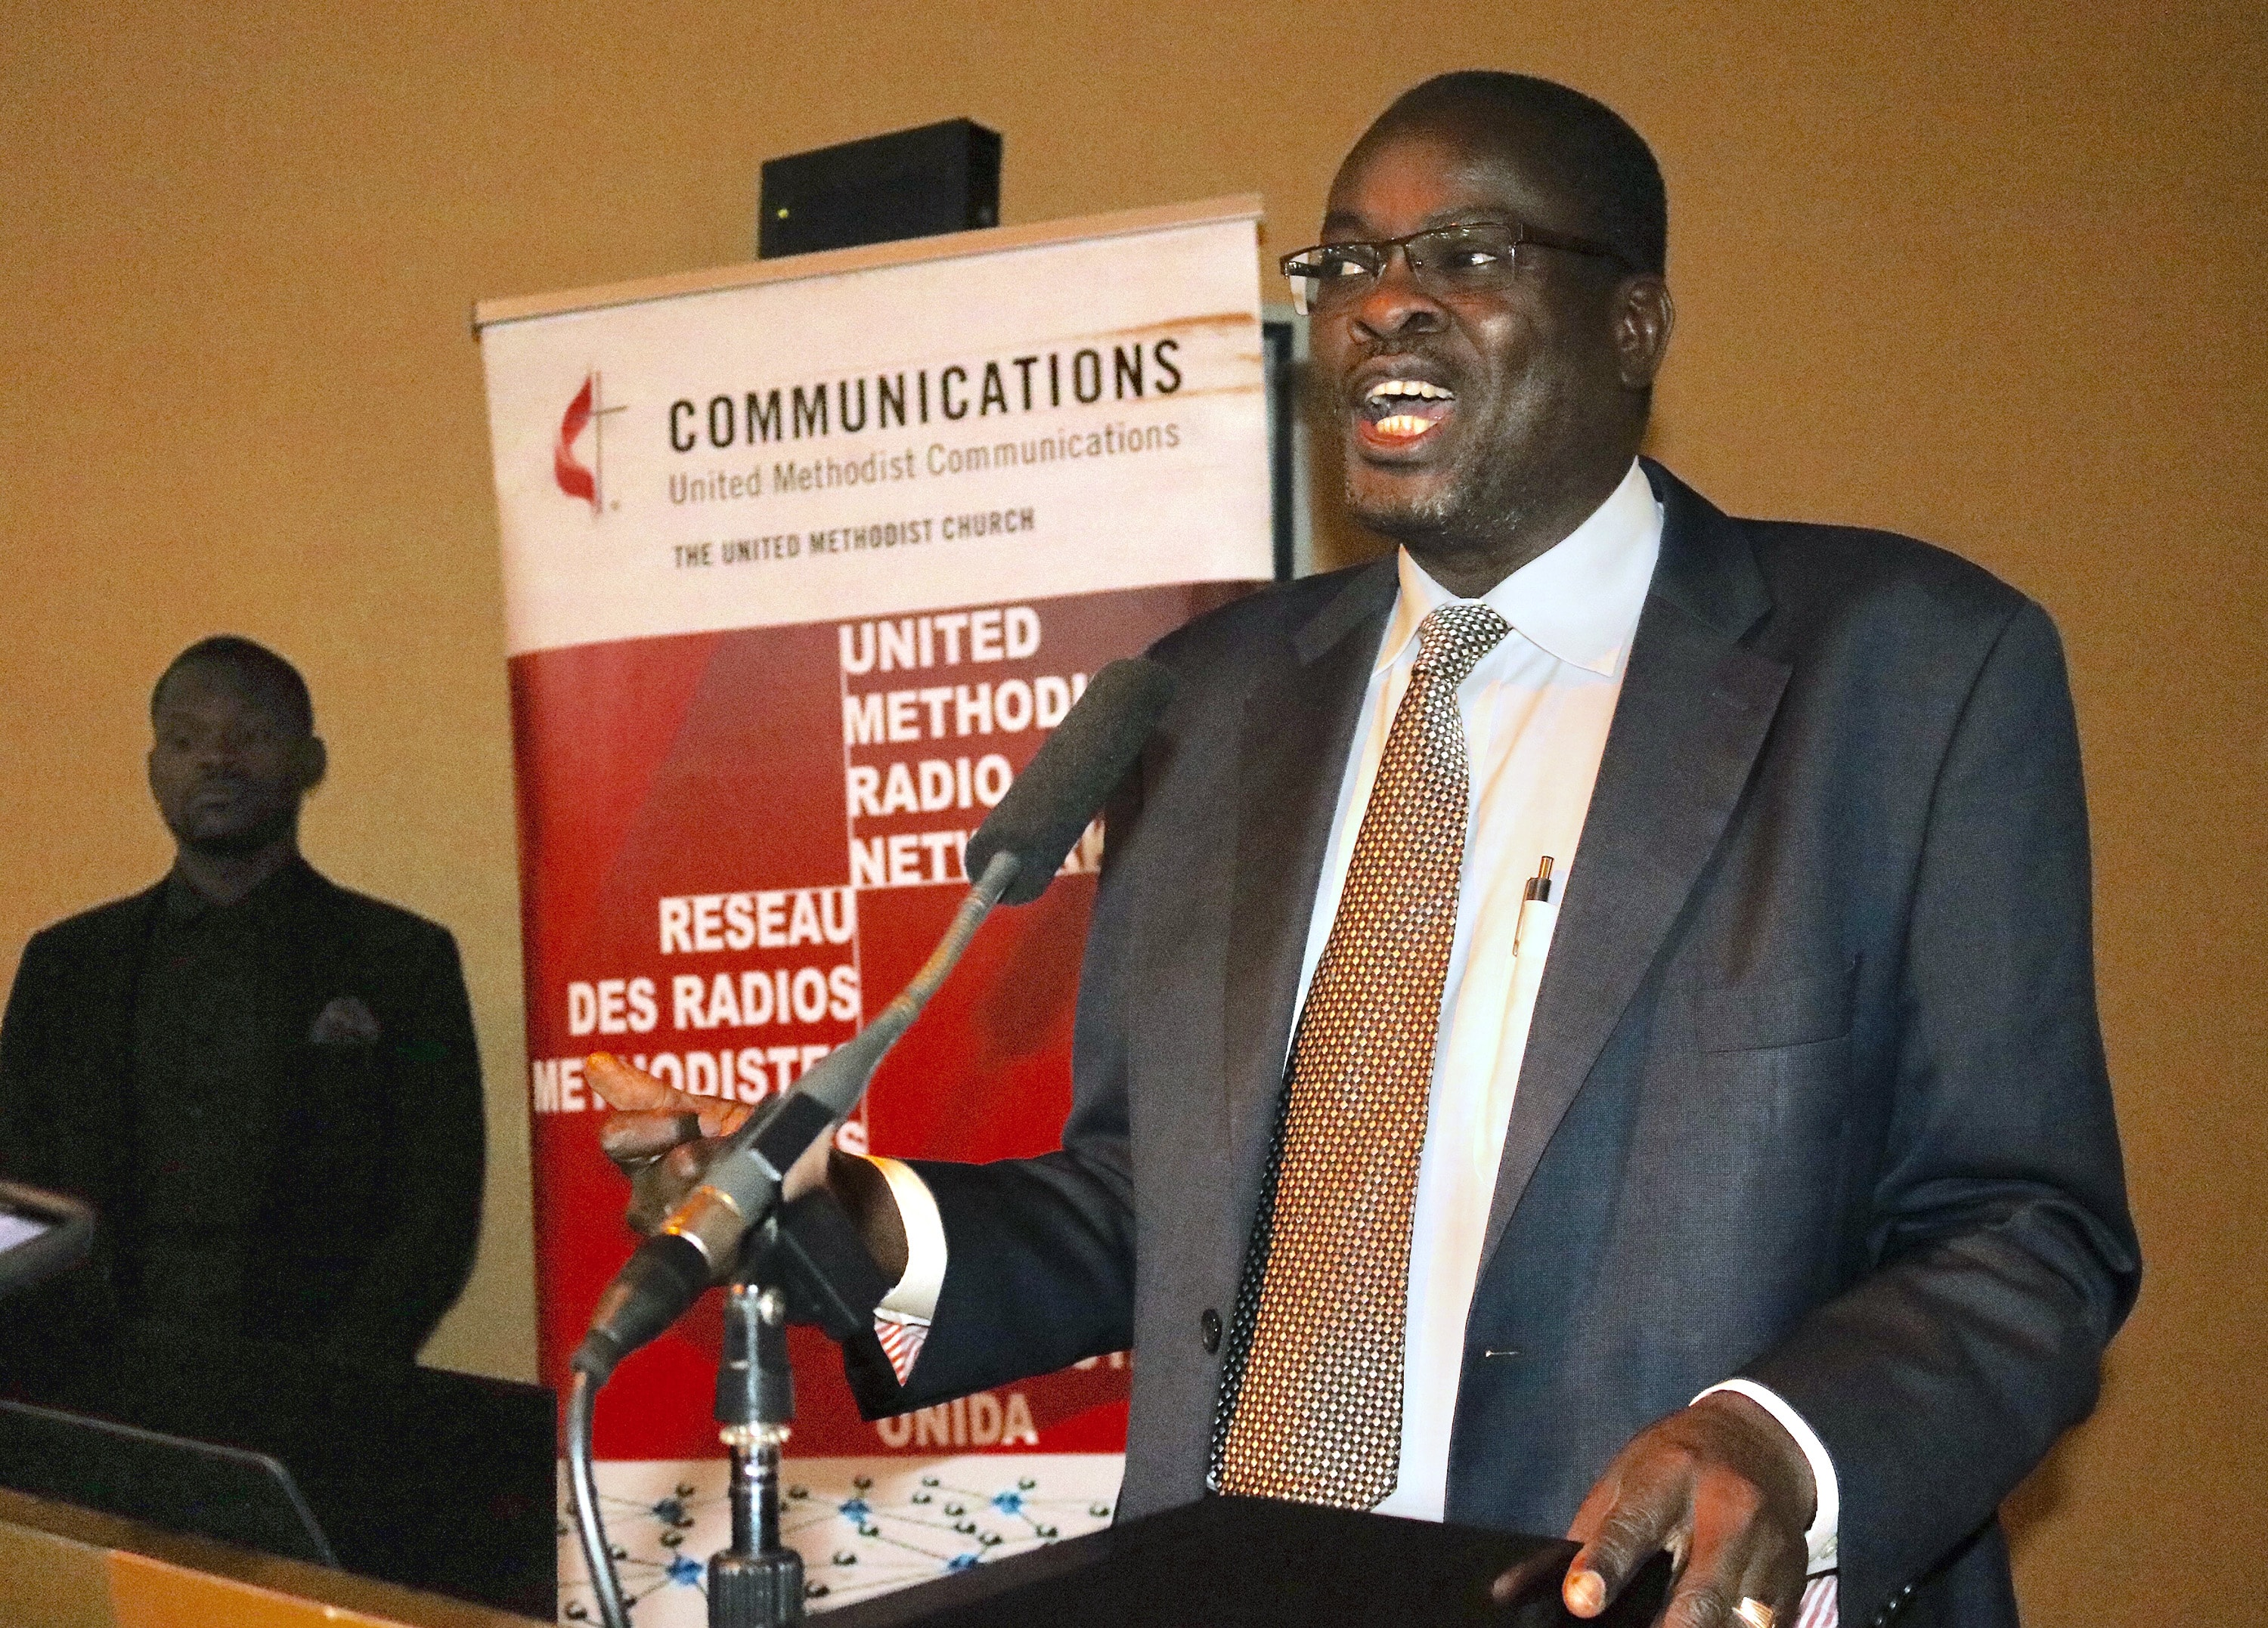 """Bishop Daniel Wandabula of the East Africa Episcopal Area called on communicators to """"unite the church (rather) than perpetuate divisions"""" while speaking at the United Methodist Radio Network annual meeting, April 25-27, in Kampala, Uganda. Photo by the Rev. Taurai Emmanuel Maforo."""